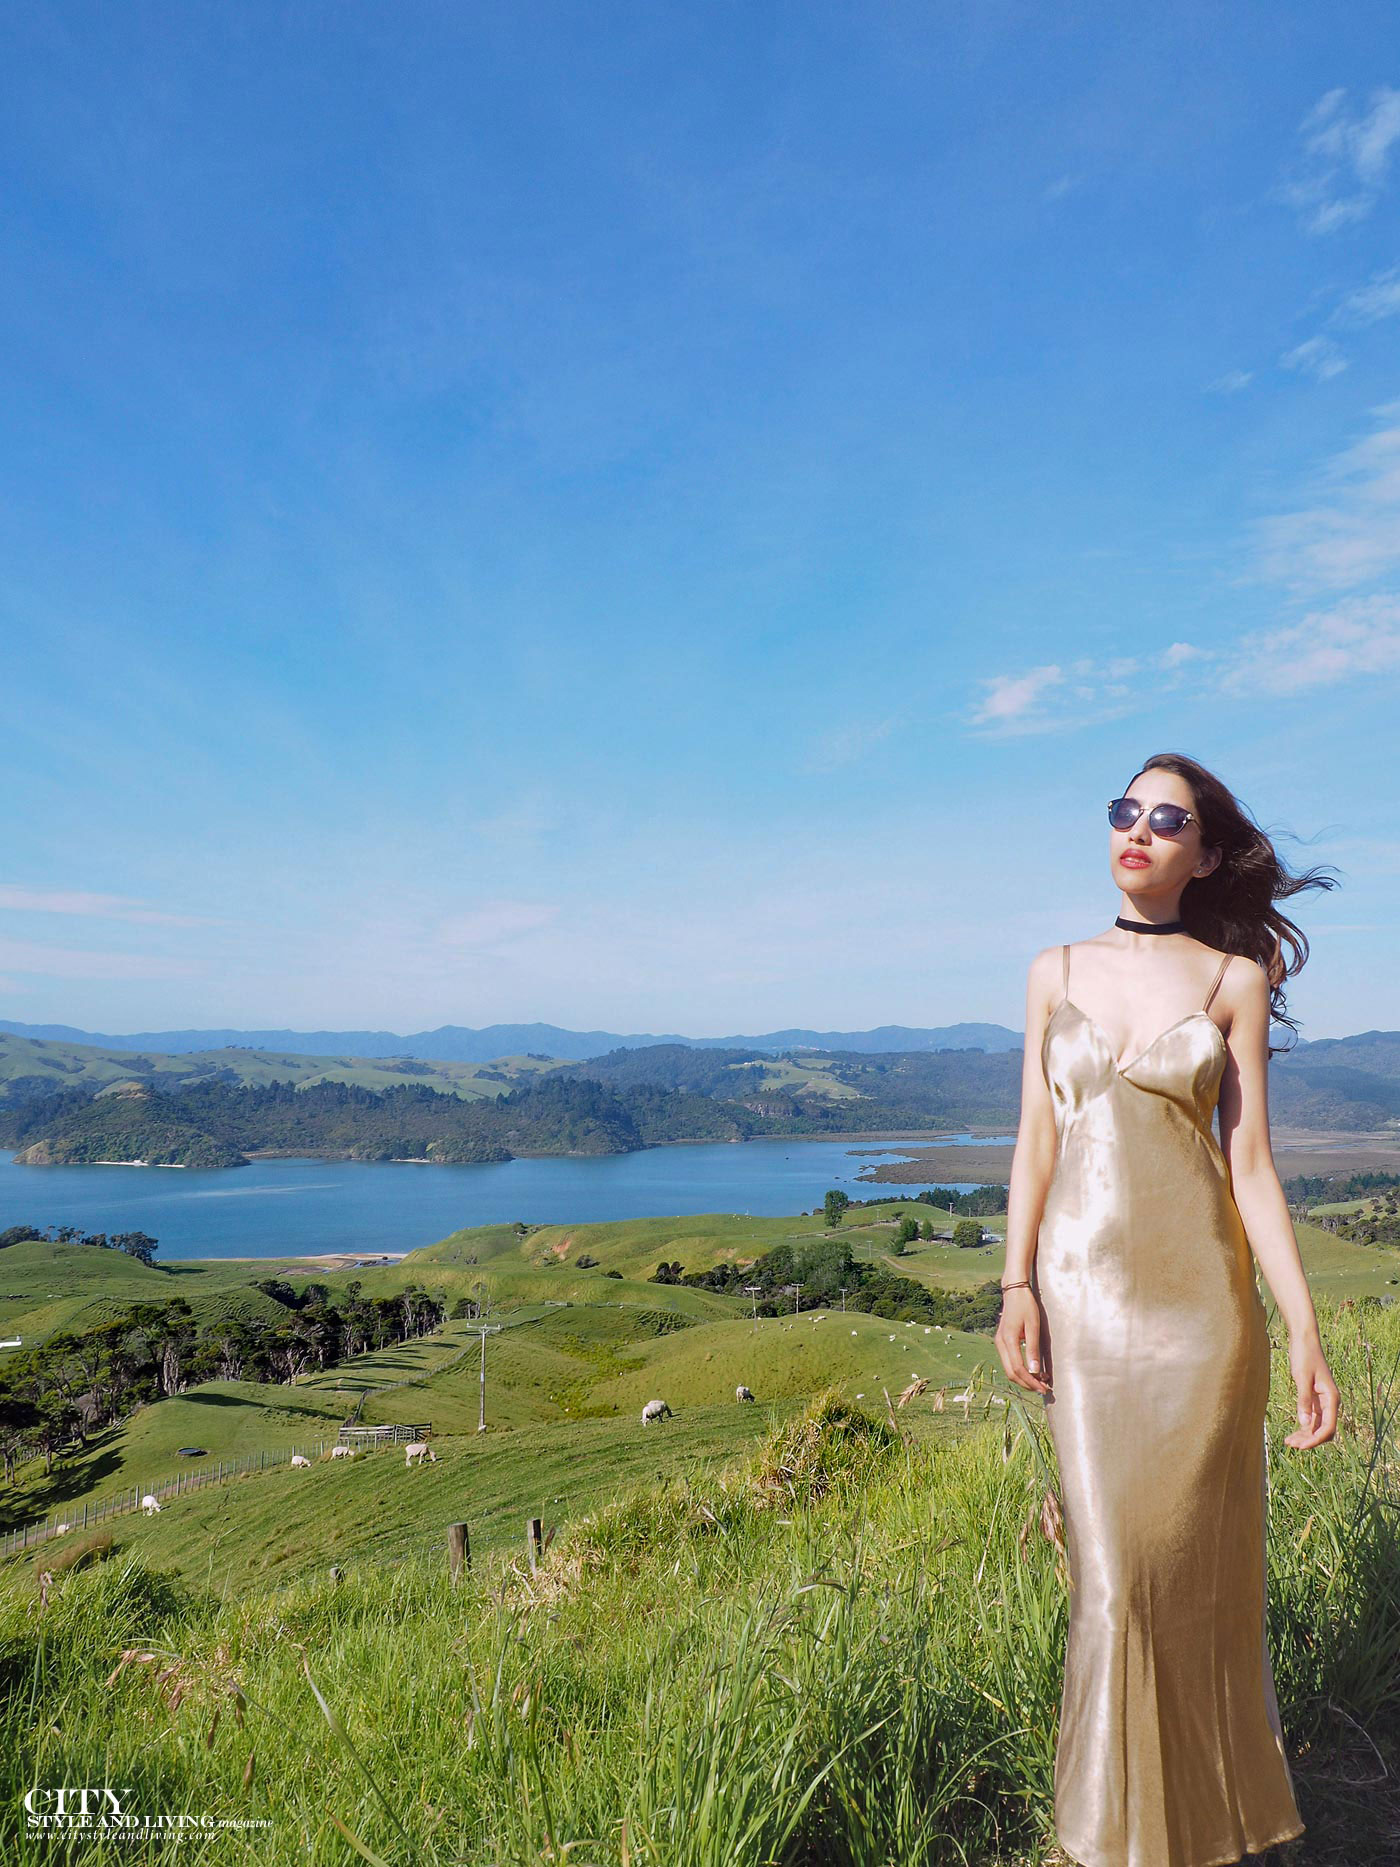 City style and living magazine Editors Notebook style fashion blogger Shivana M Mercury Bay Winery Coromandel New Zealand Gold dress overlooking the ocean